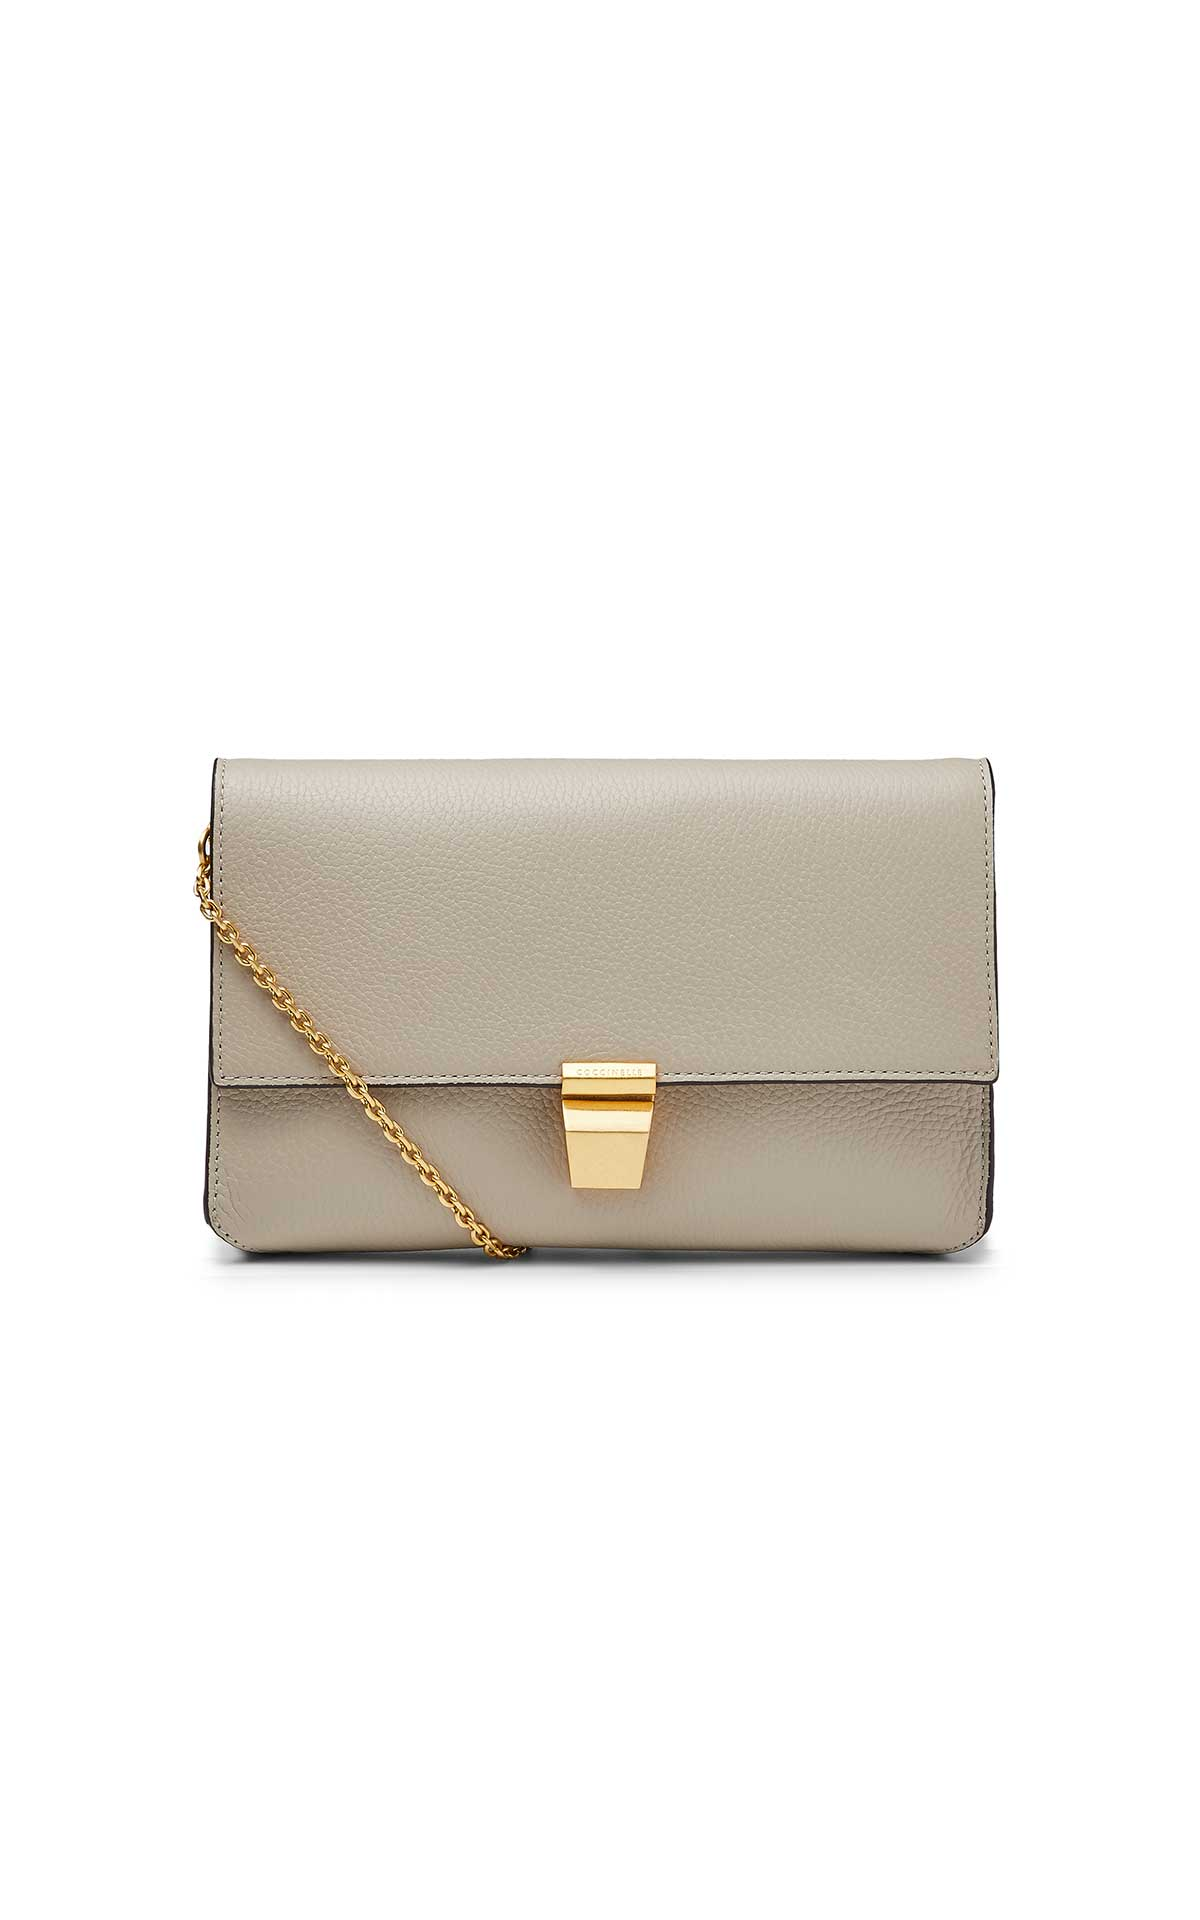 Beige leather bag from Coccinelle